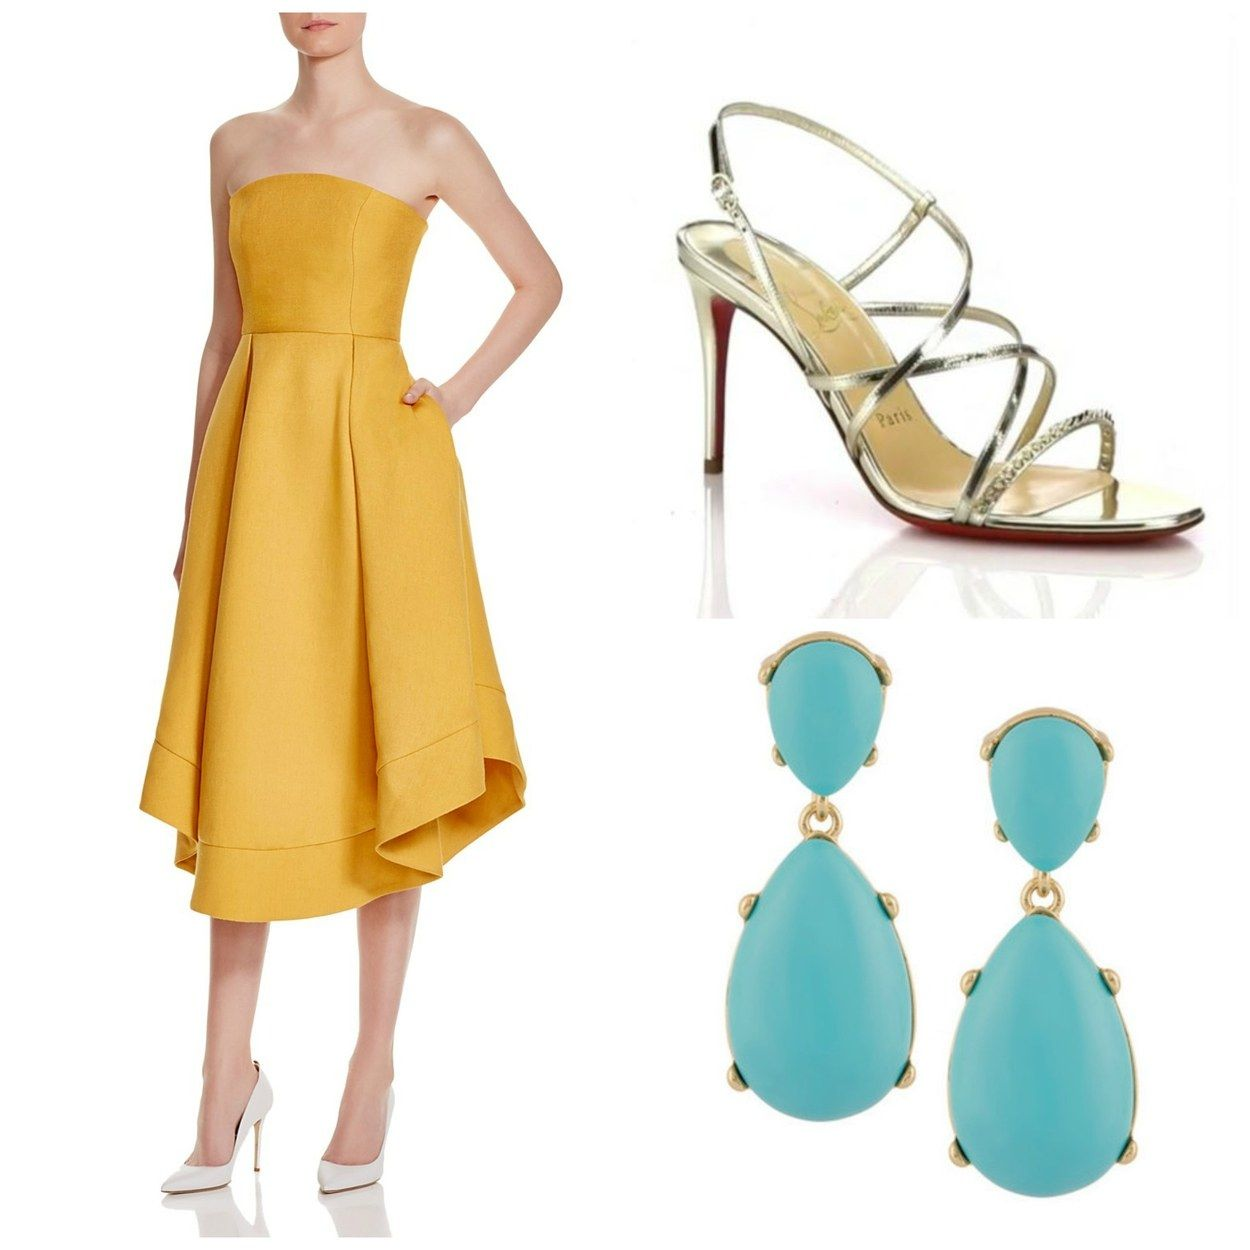 Dresses to wear to a wedding as a guest in summer   Dress to Wear to A Summer Wedding  Womenus Dresses for Wedding